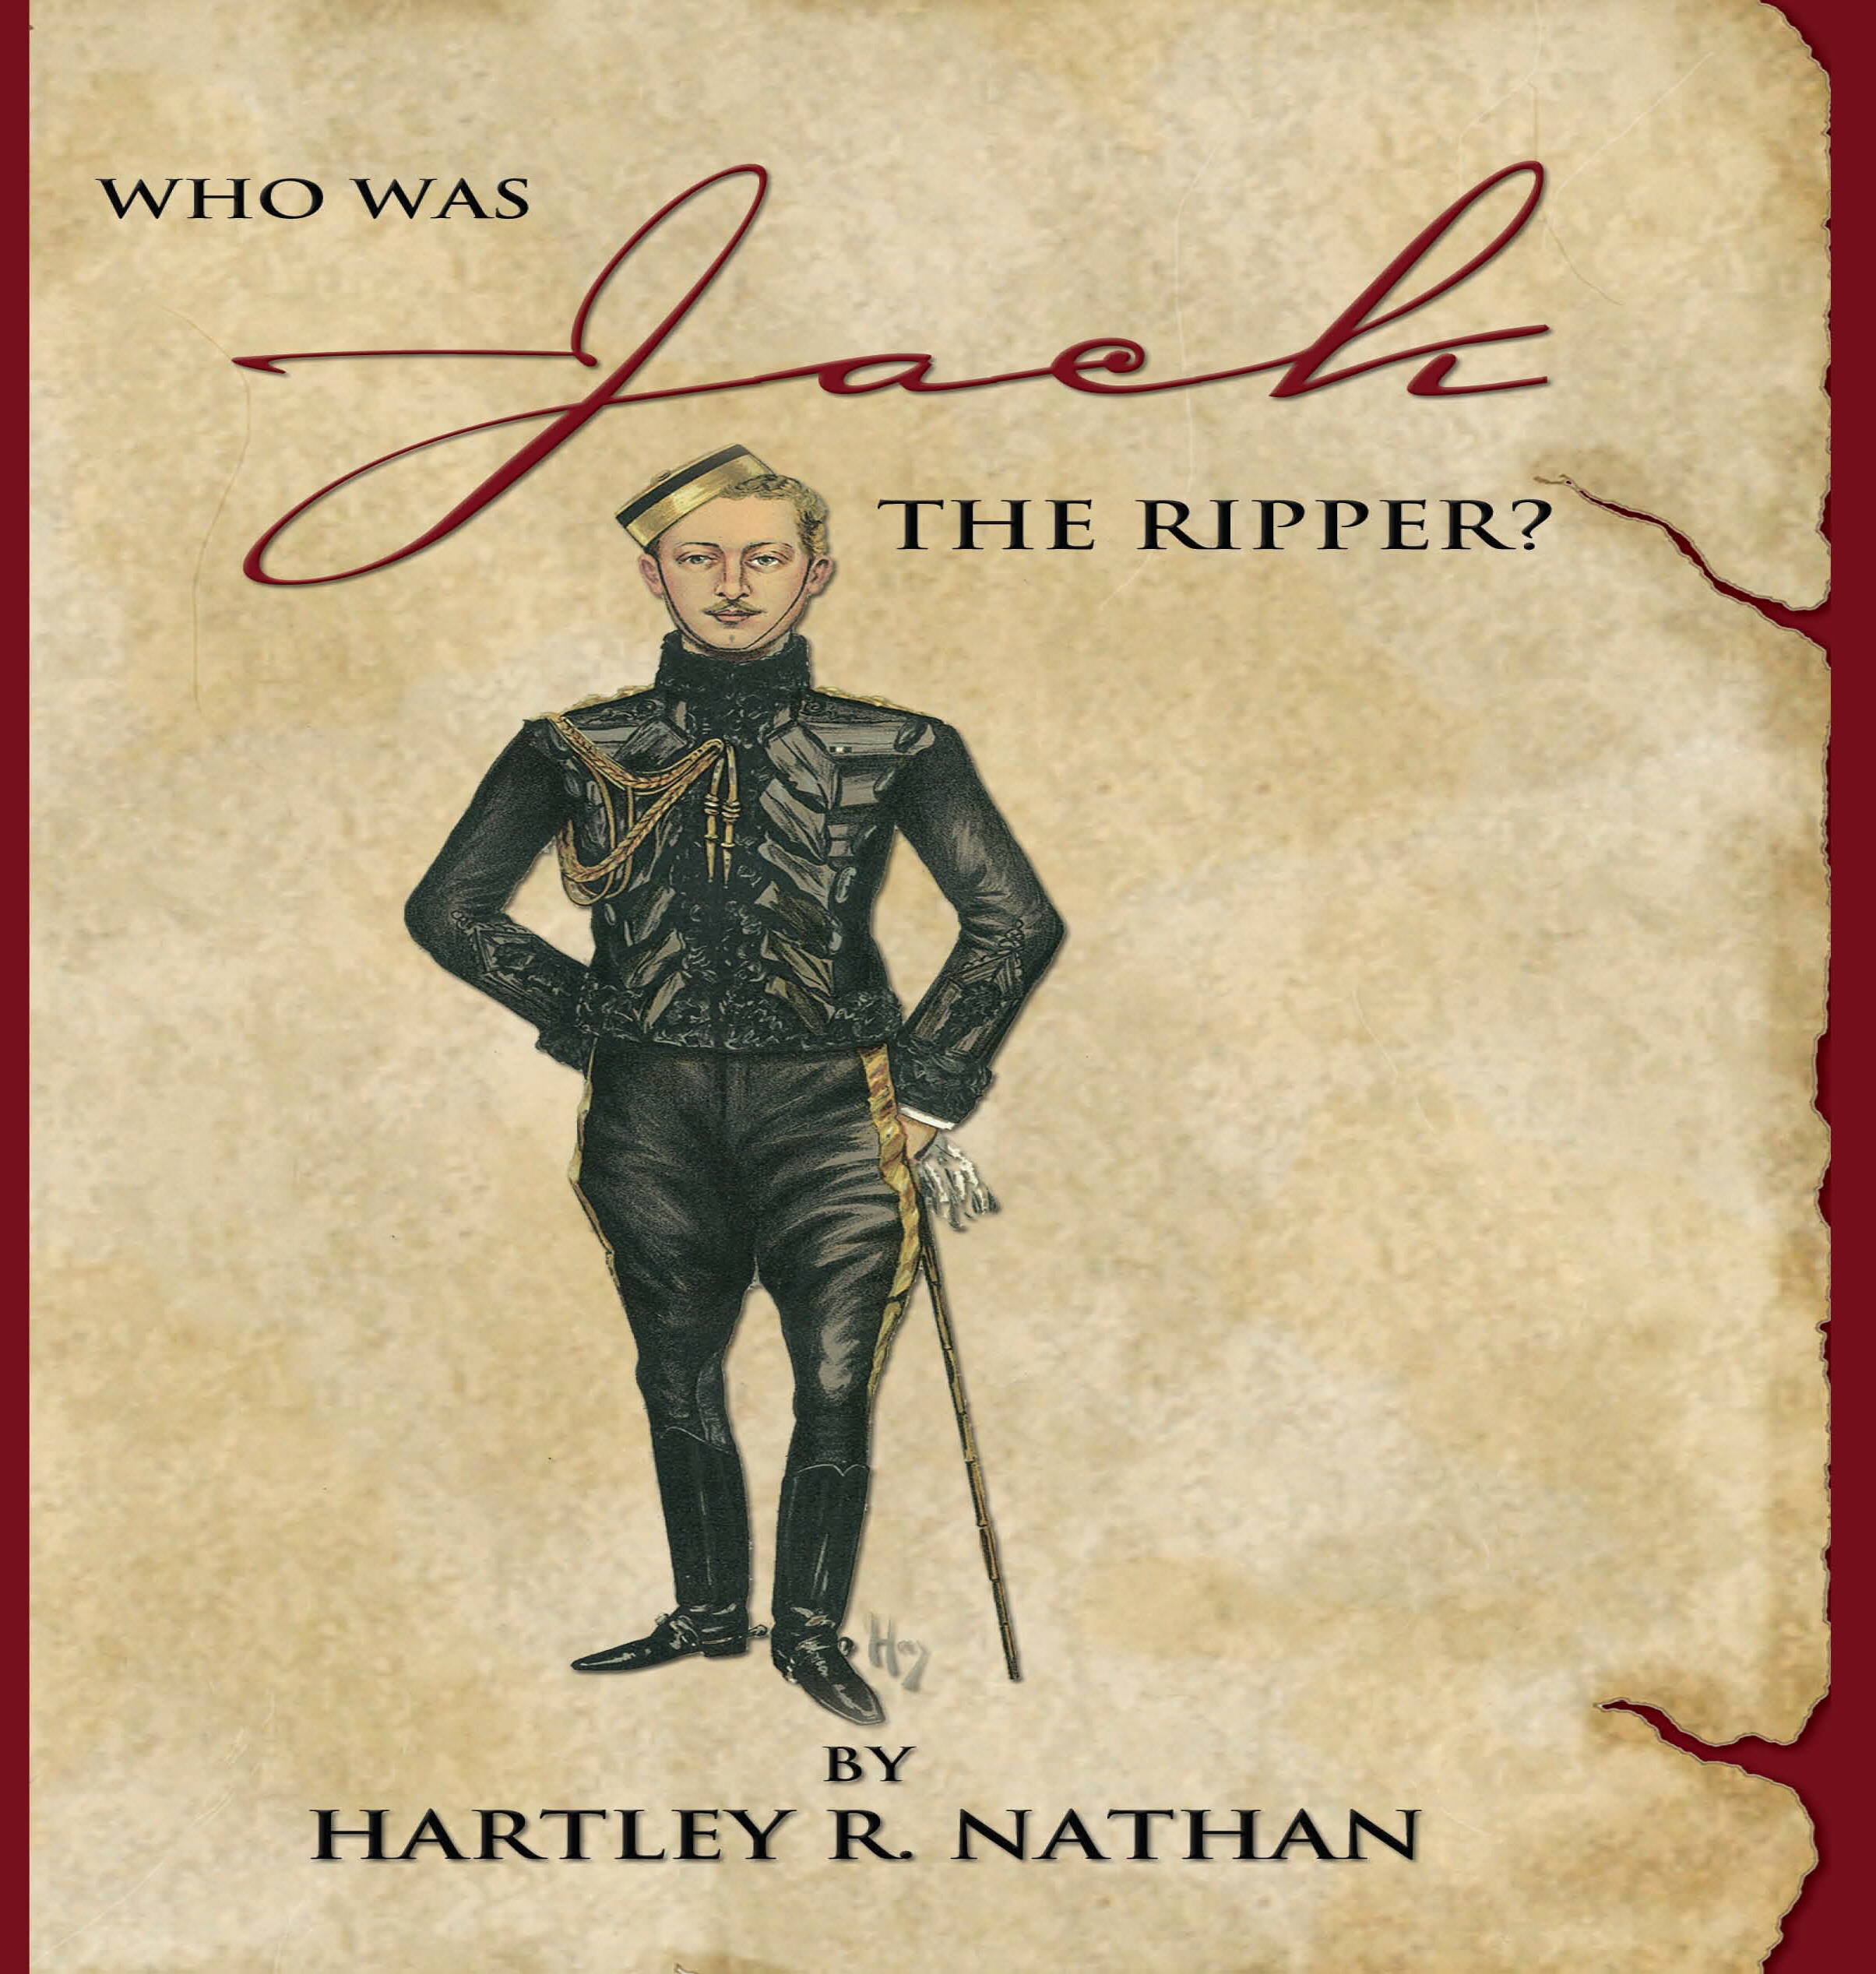 an introduction to the mystery of jack the ripper Jack the ripper — 5 mysteries within the mystery the infamous jack the ripper murders are arguably the most famous unsolved crime in history.